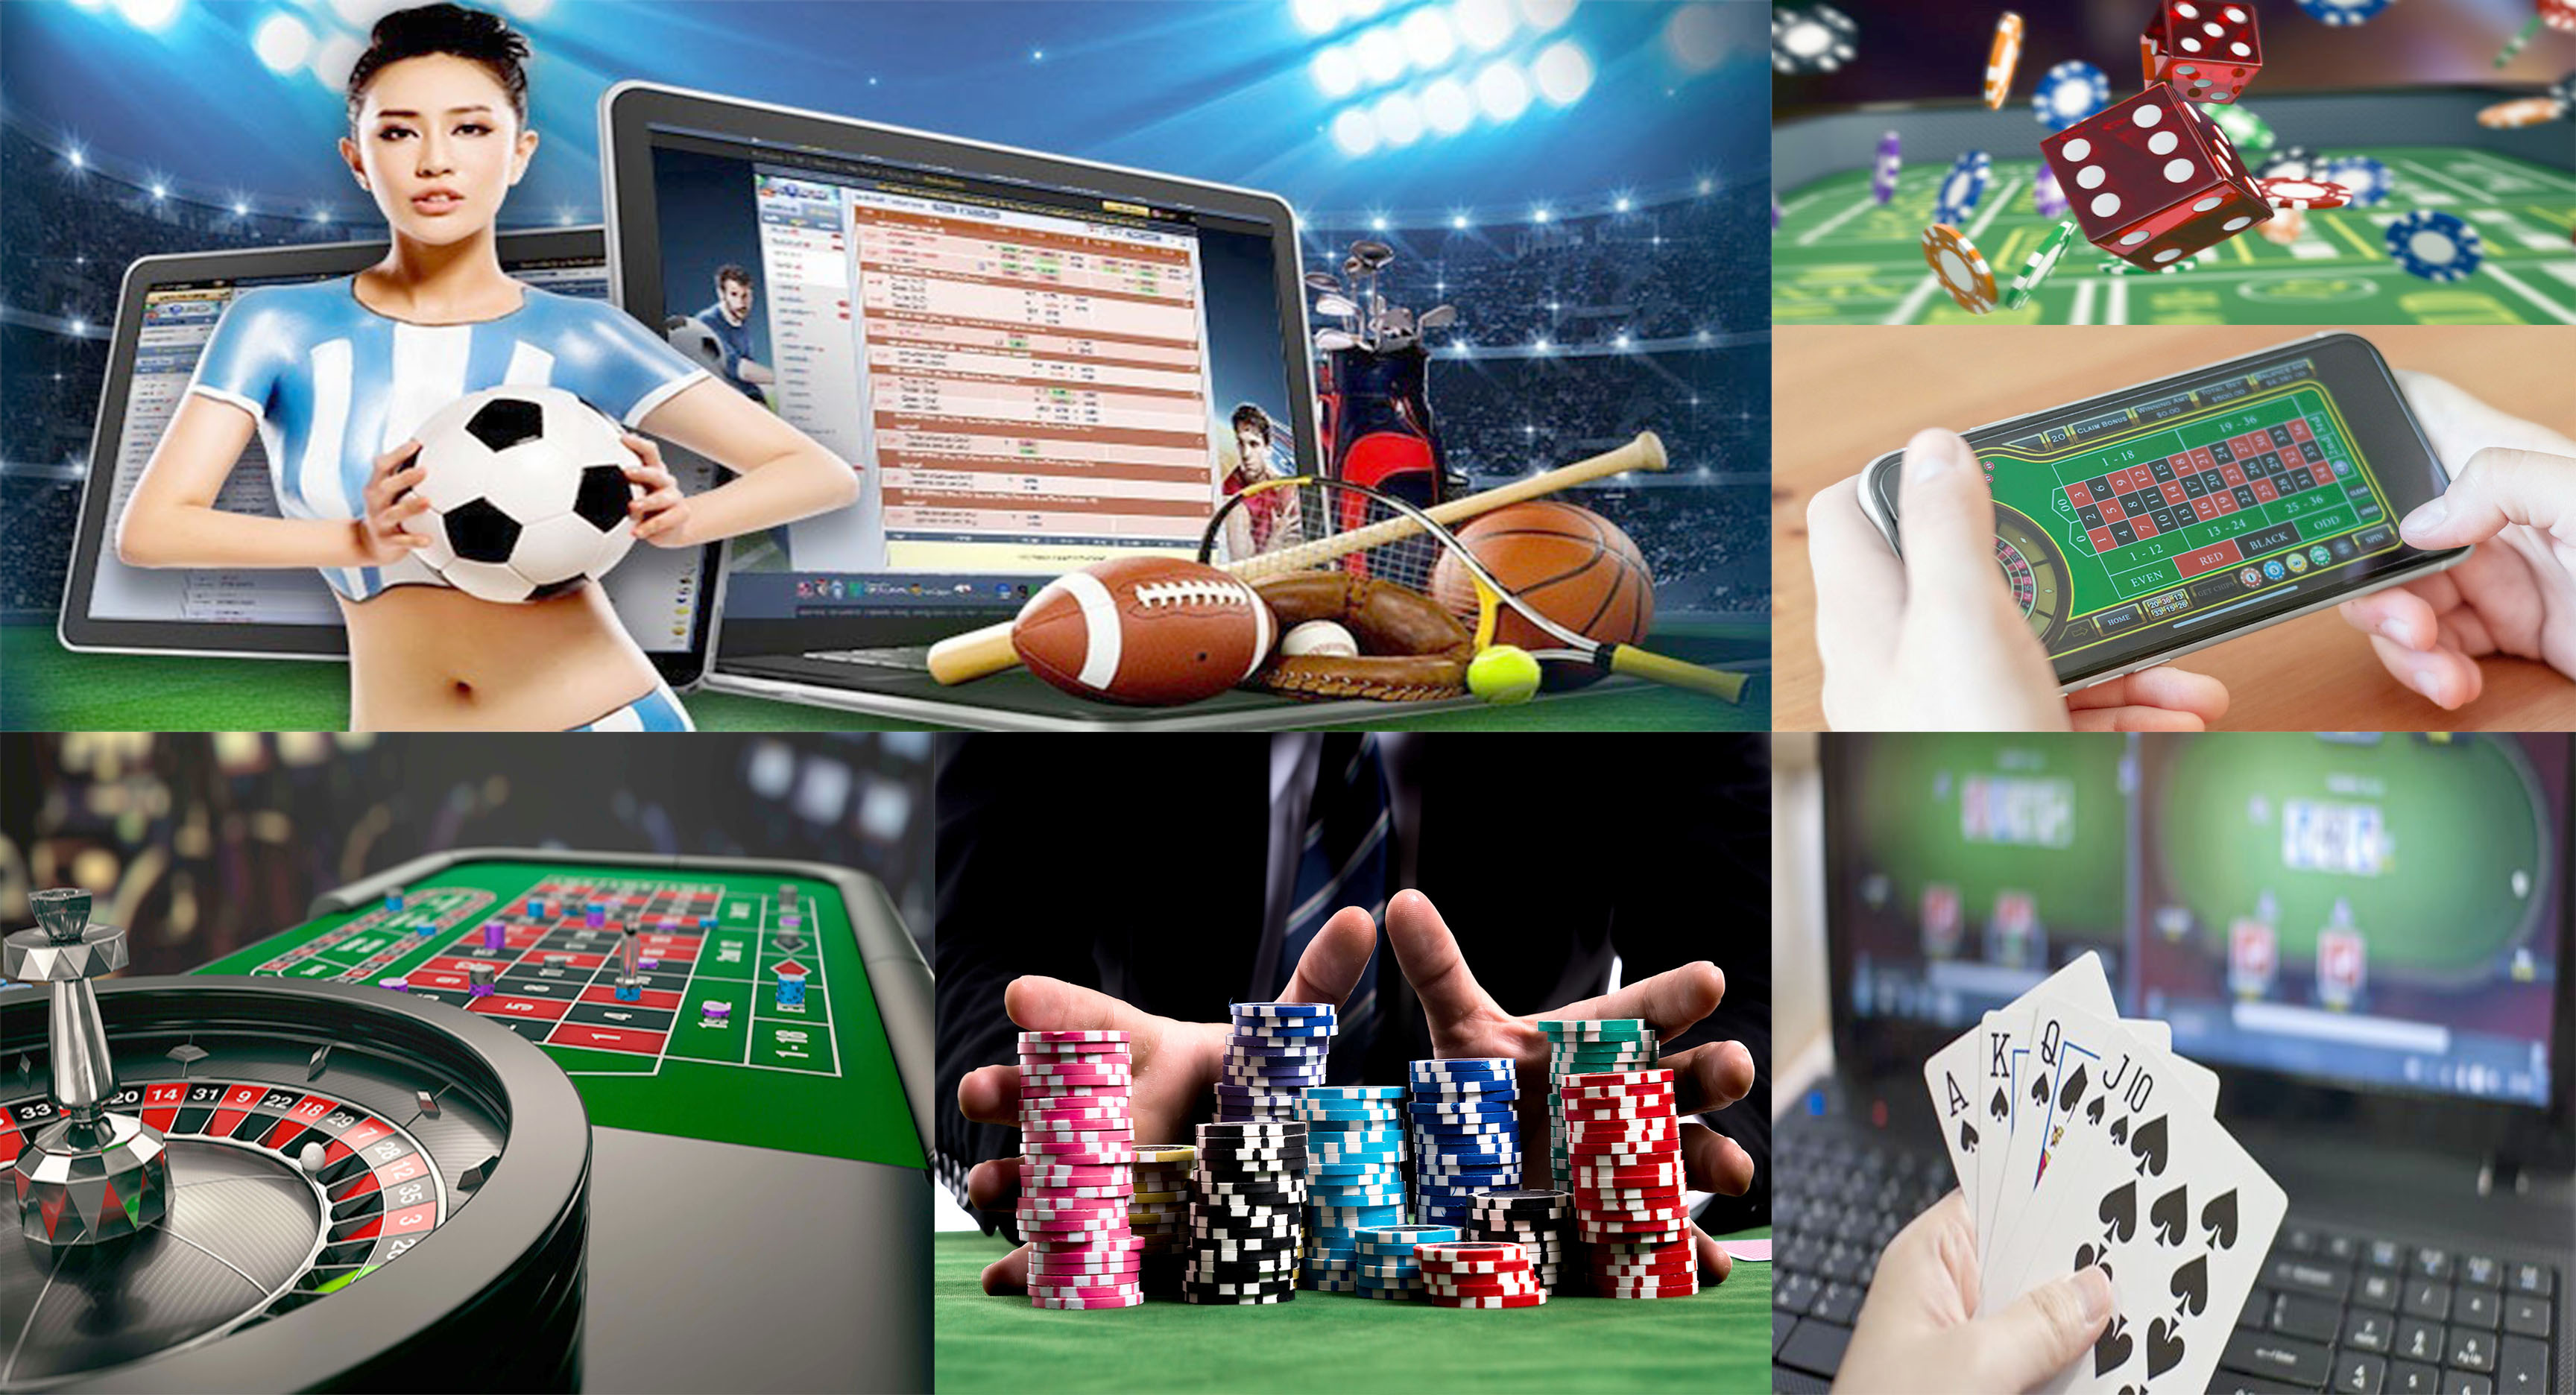 Rank Your Website with 30 Days Drip Feed 60 Gambling, Poker, Betting, Casino, Slot PBN Backlinks